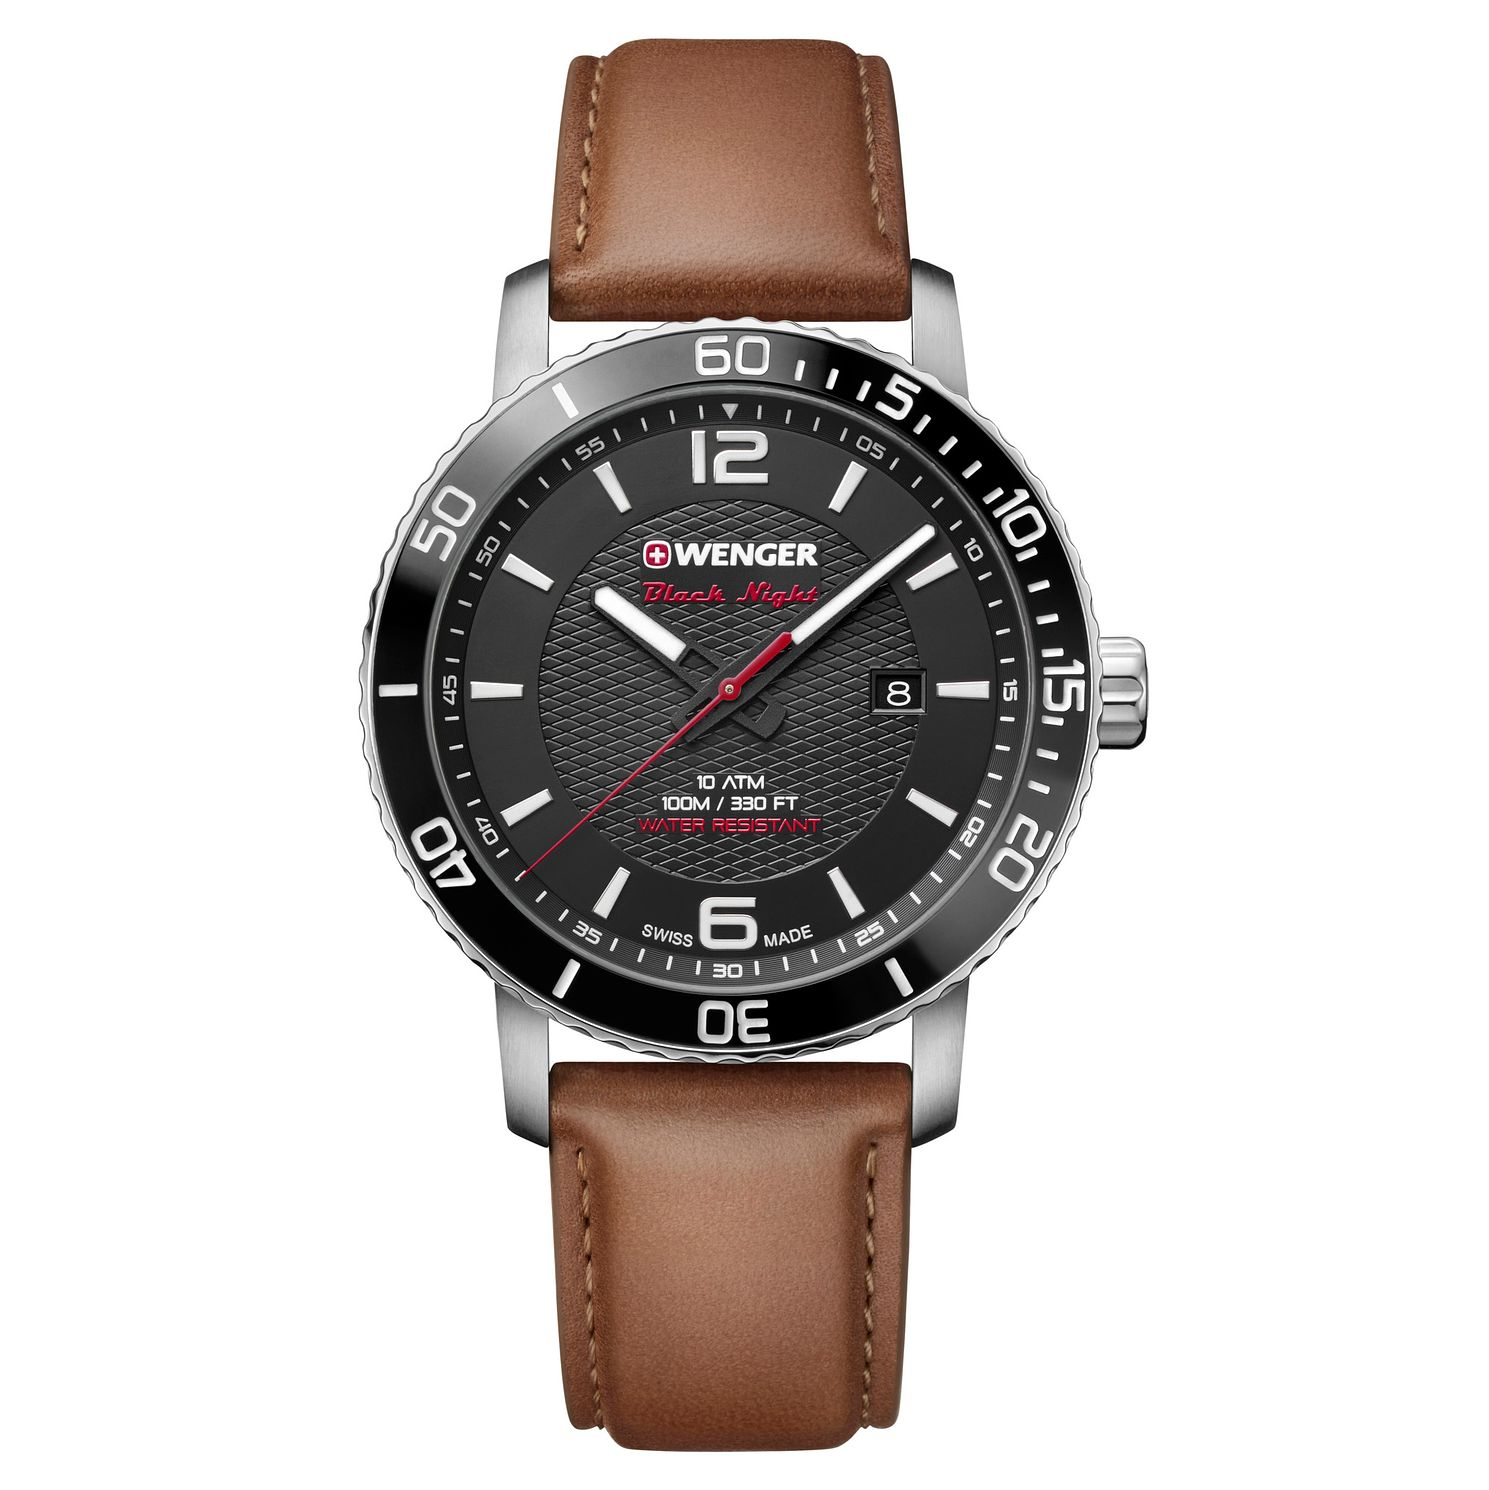 Wenger Roadster Black Night Men's Brown Leather Strap Watch - Product number 8368503